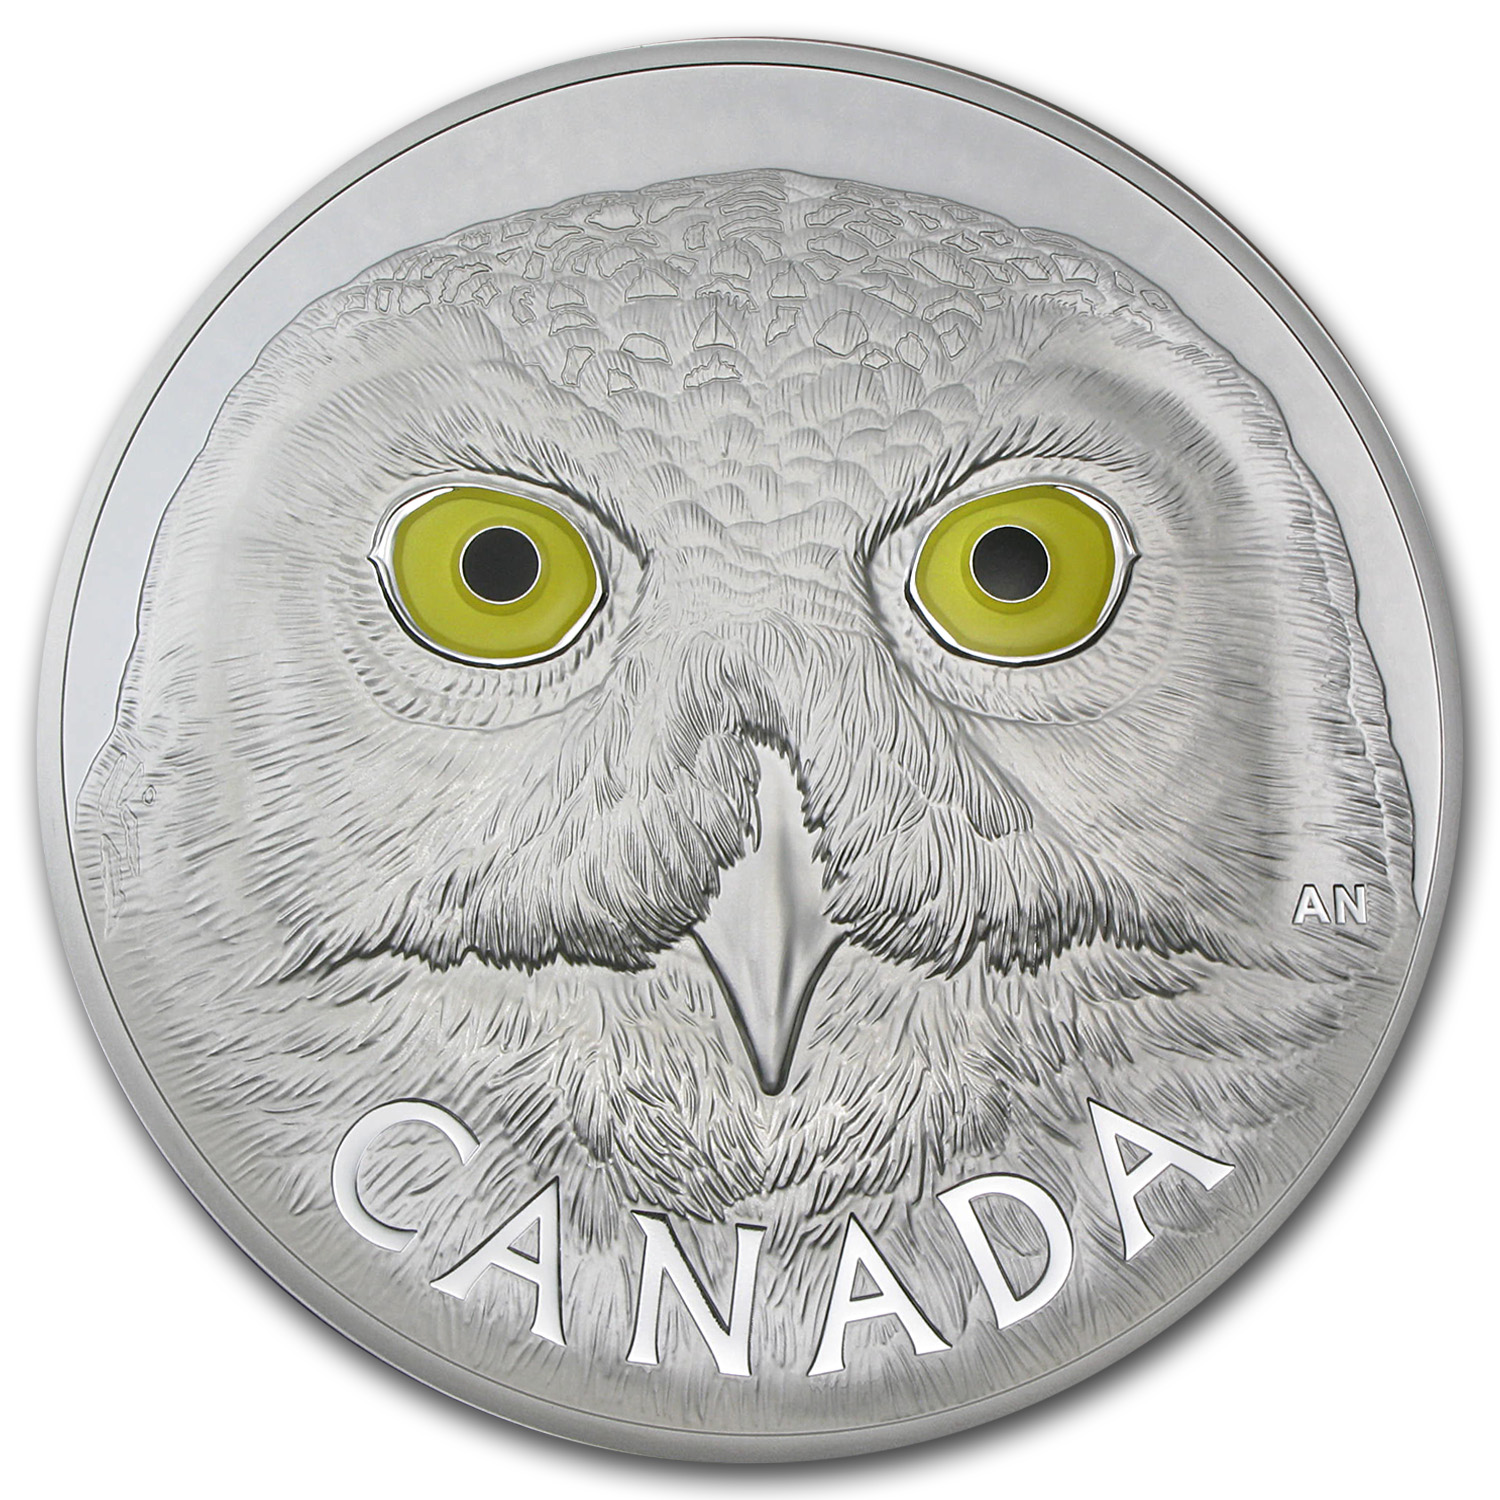 2014 1 Kilo Silver Canadian $250 In the Eyes of the Snowy Owl